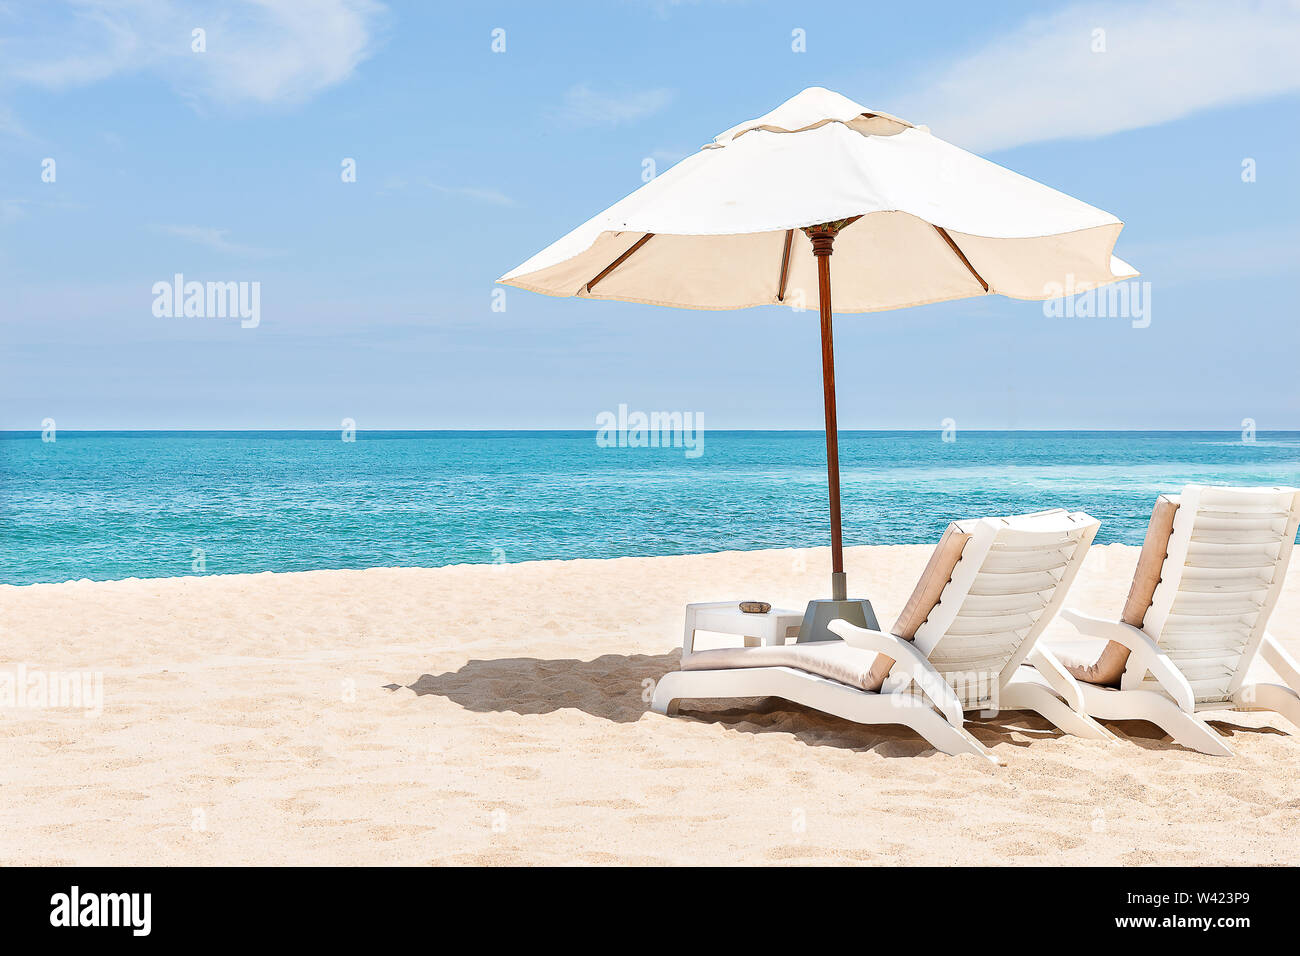 Sea chairs and umbrellas on the sand near blue water side with horizon and clear sky - Stock Image